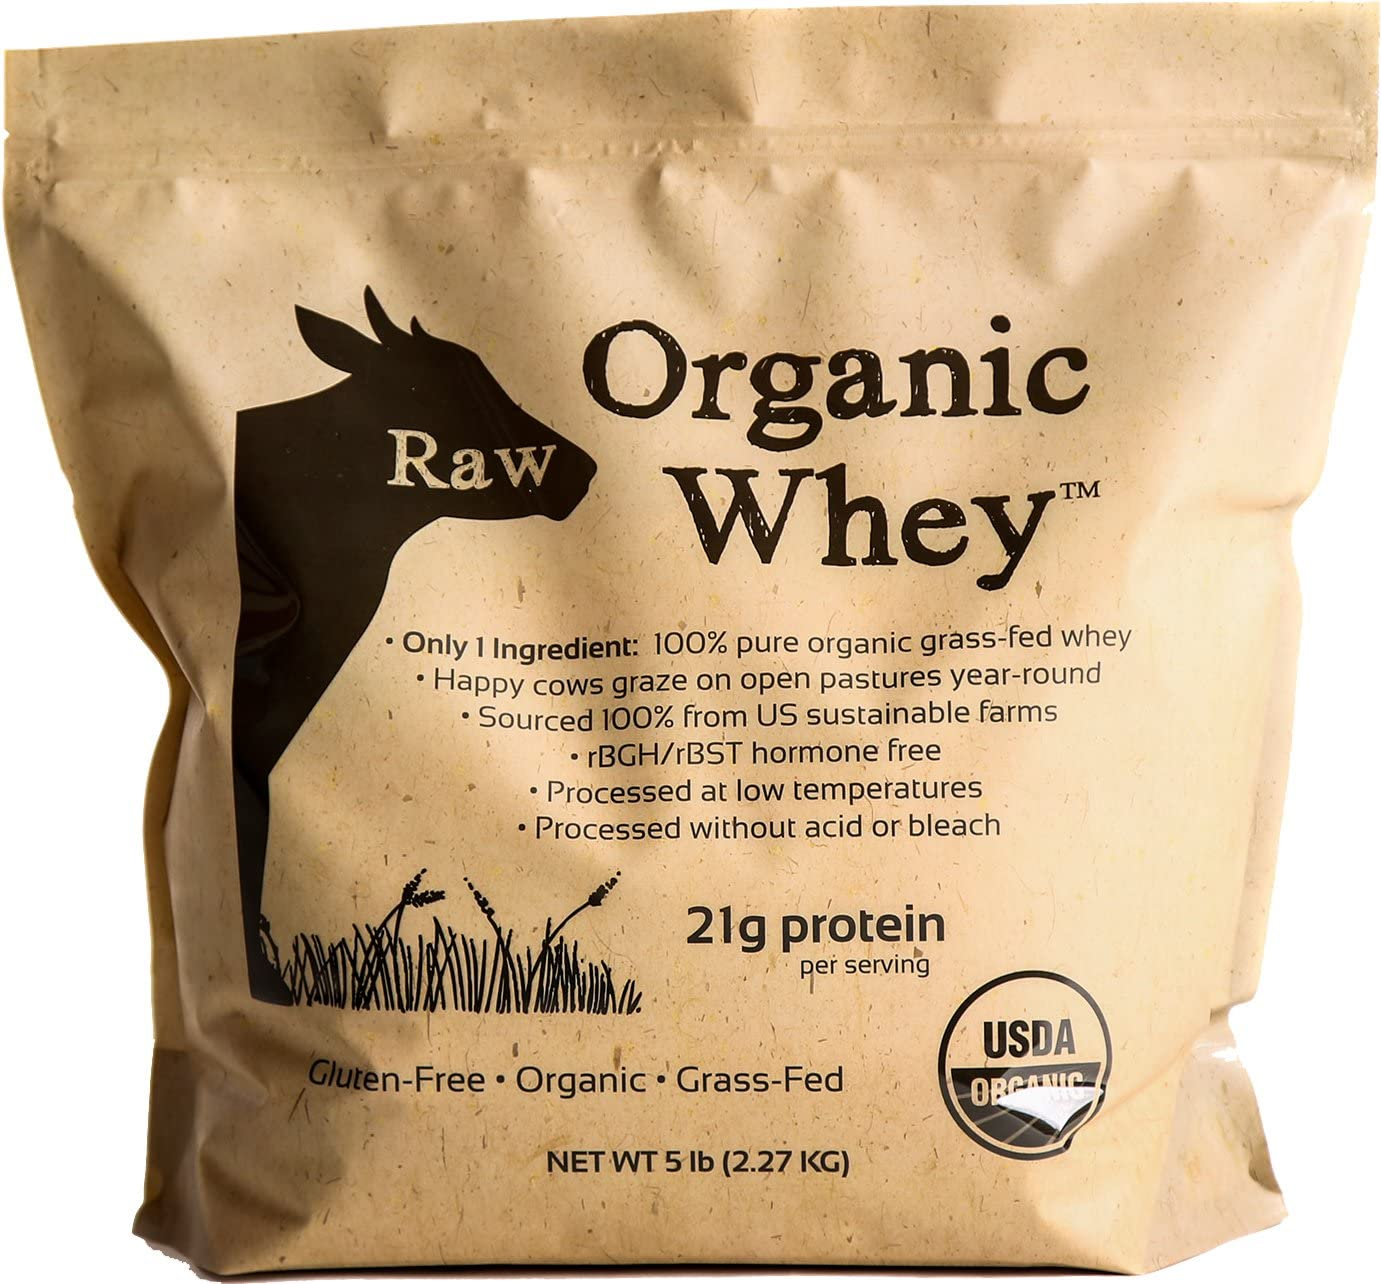 Raw Organic Whey 5LB – USDA Certified Organic Whey Protein Powder, Happy Healthy Cows, COLD PROCESSED Undenatured 100 Grass Fed NON-GMO rBGH Free Gluten Free, Unflavored, Unsweetened 5 LB BULK